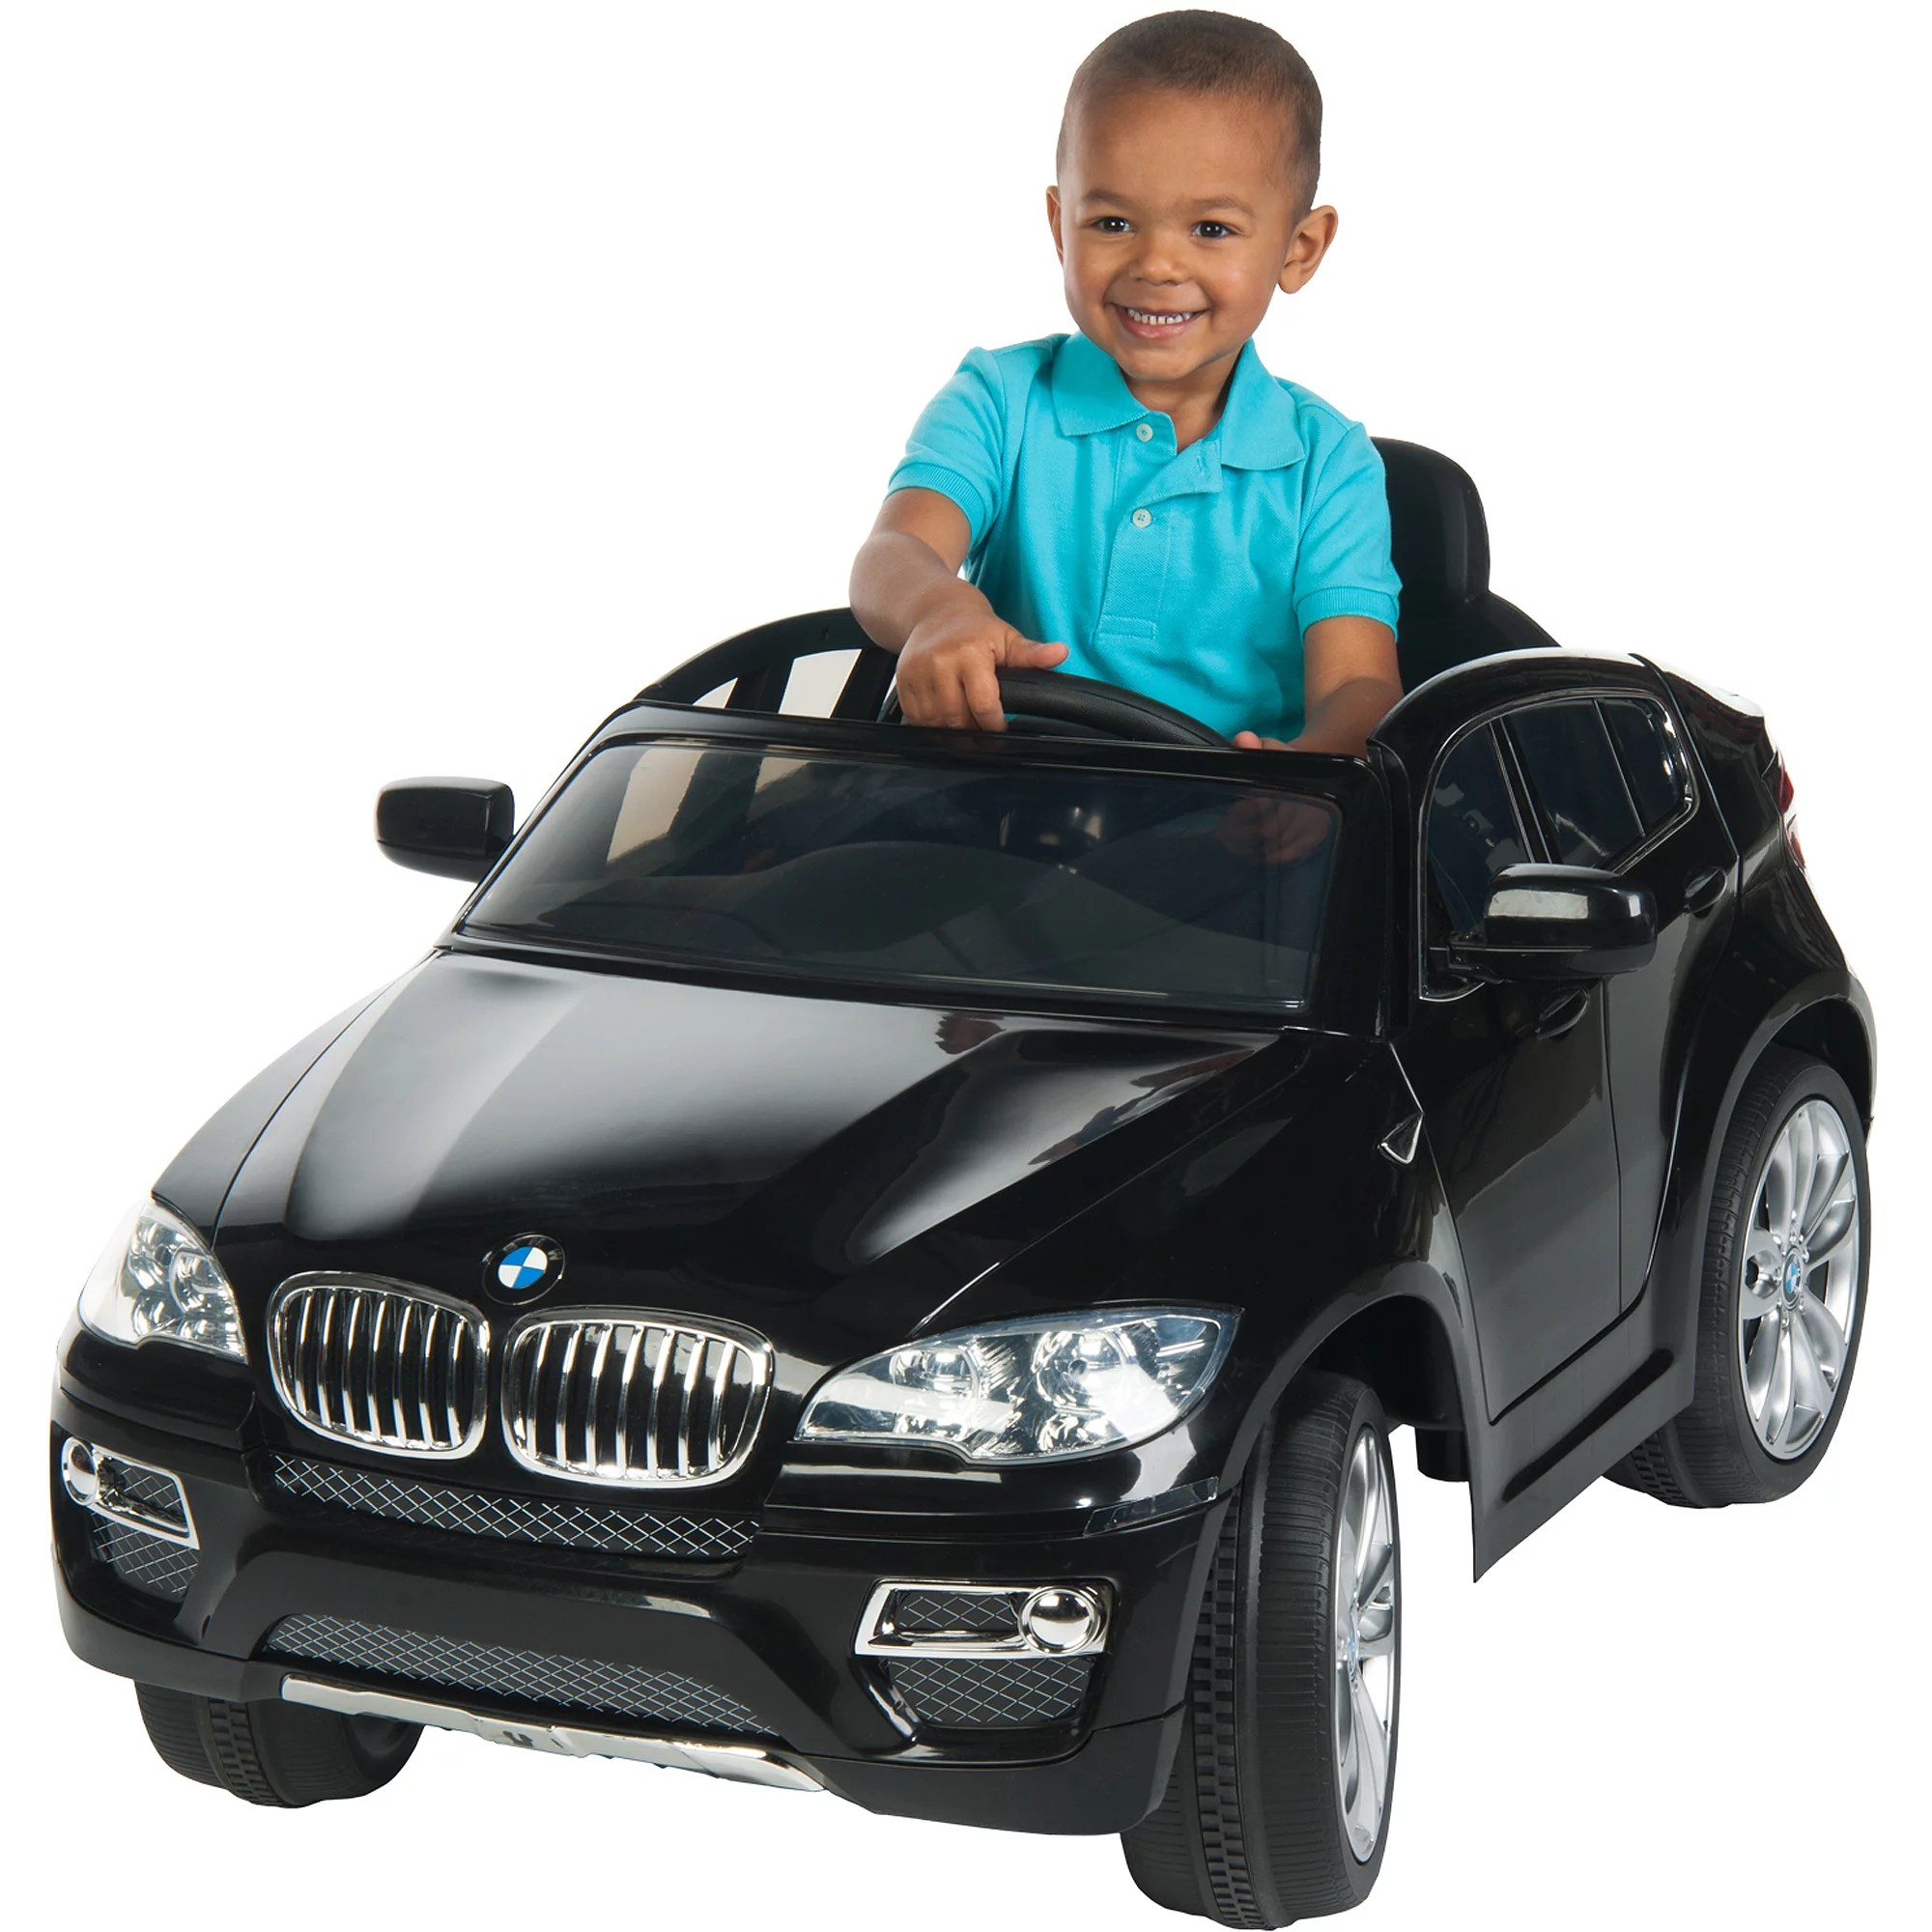 Big W Toy Cars Electric Cars For Kids Toys For 3 4 Year Old Boys Baby